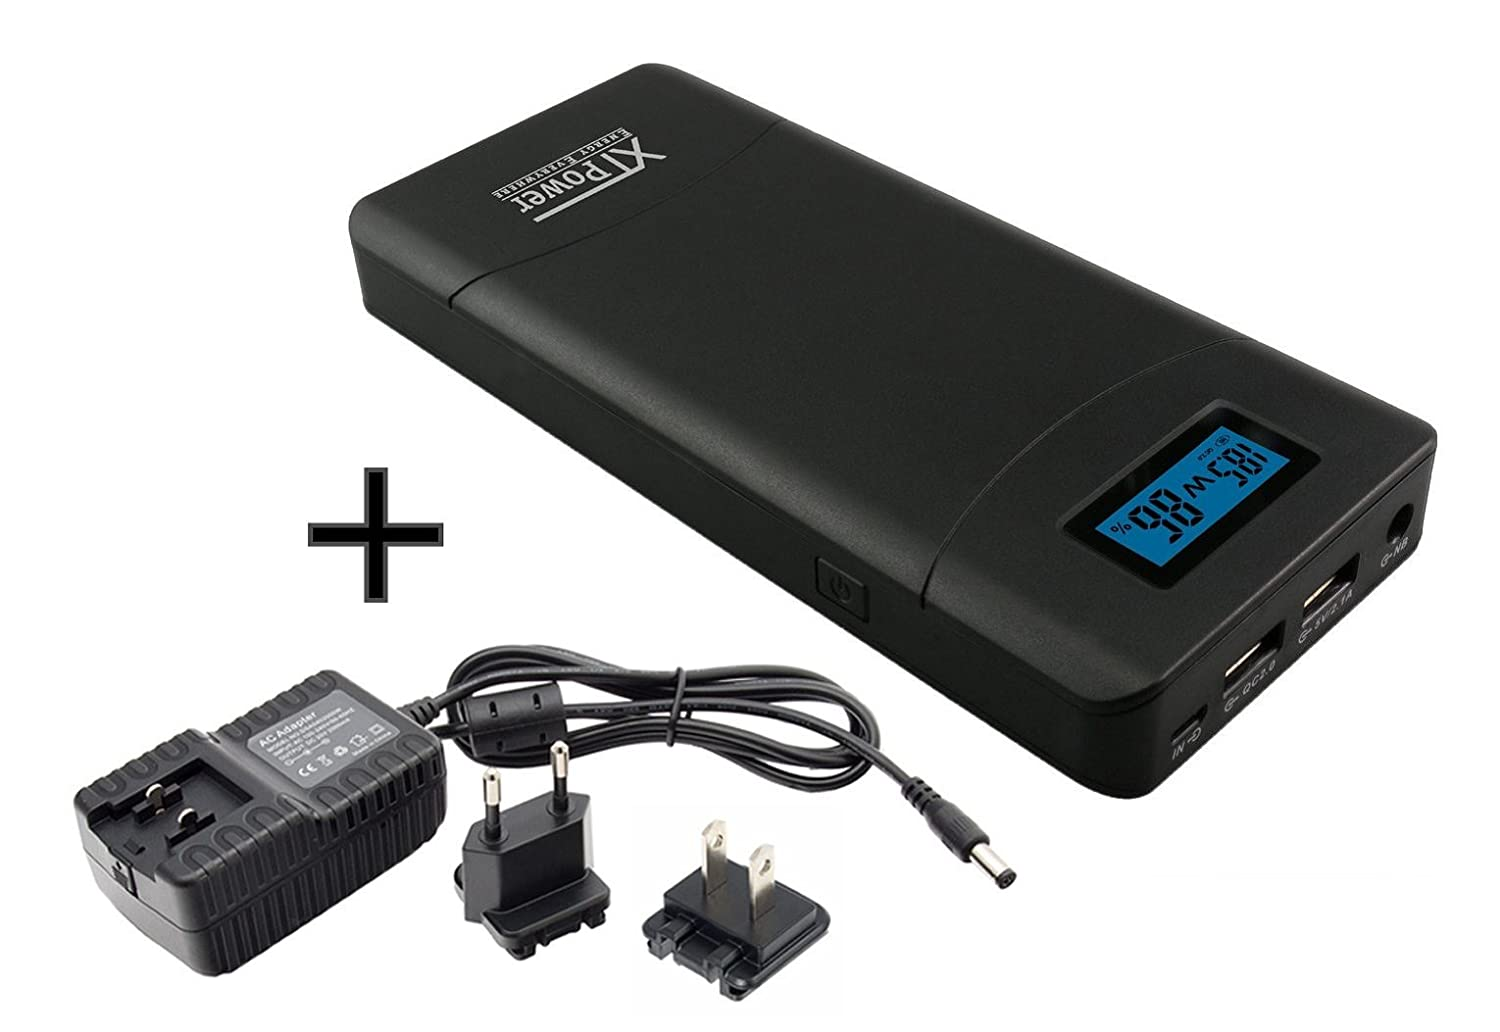 XTPower XT-20000QC2 PowerBank modern DC/USB battery with 20400mAh - 5V USB and exit for 12 to 24V FBA_XT-20000QC2PA2